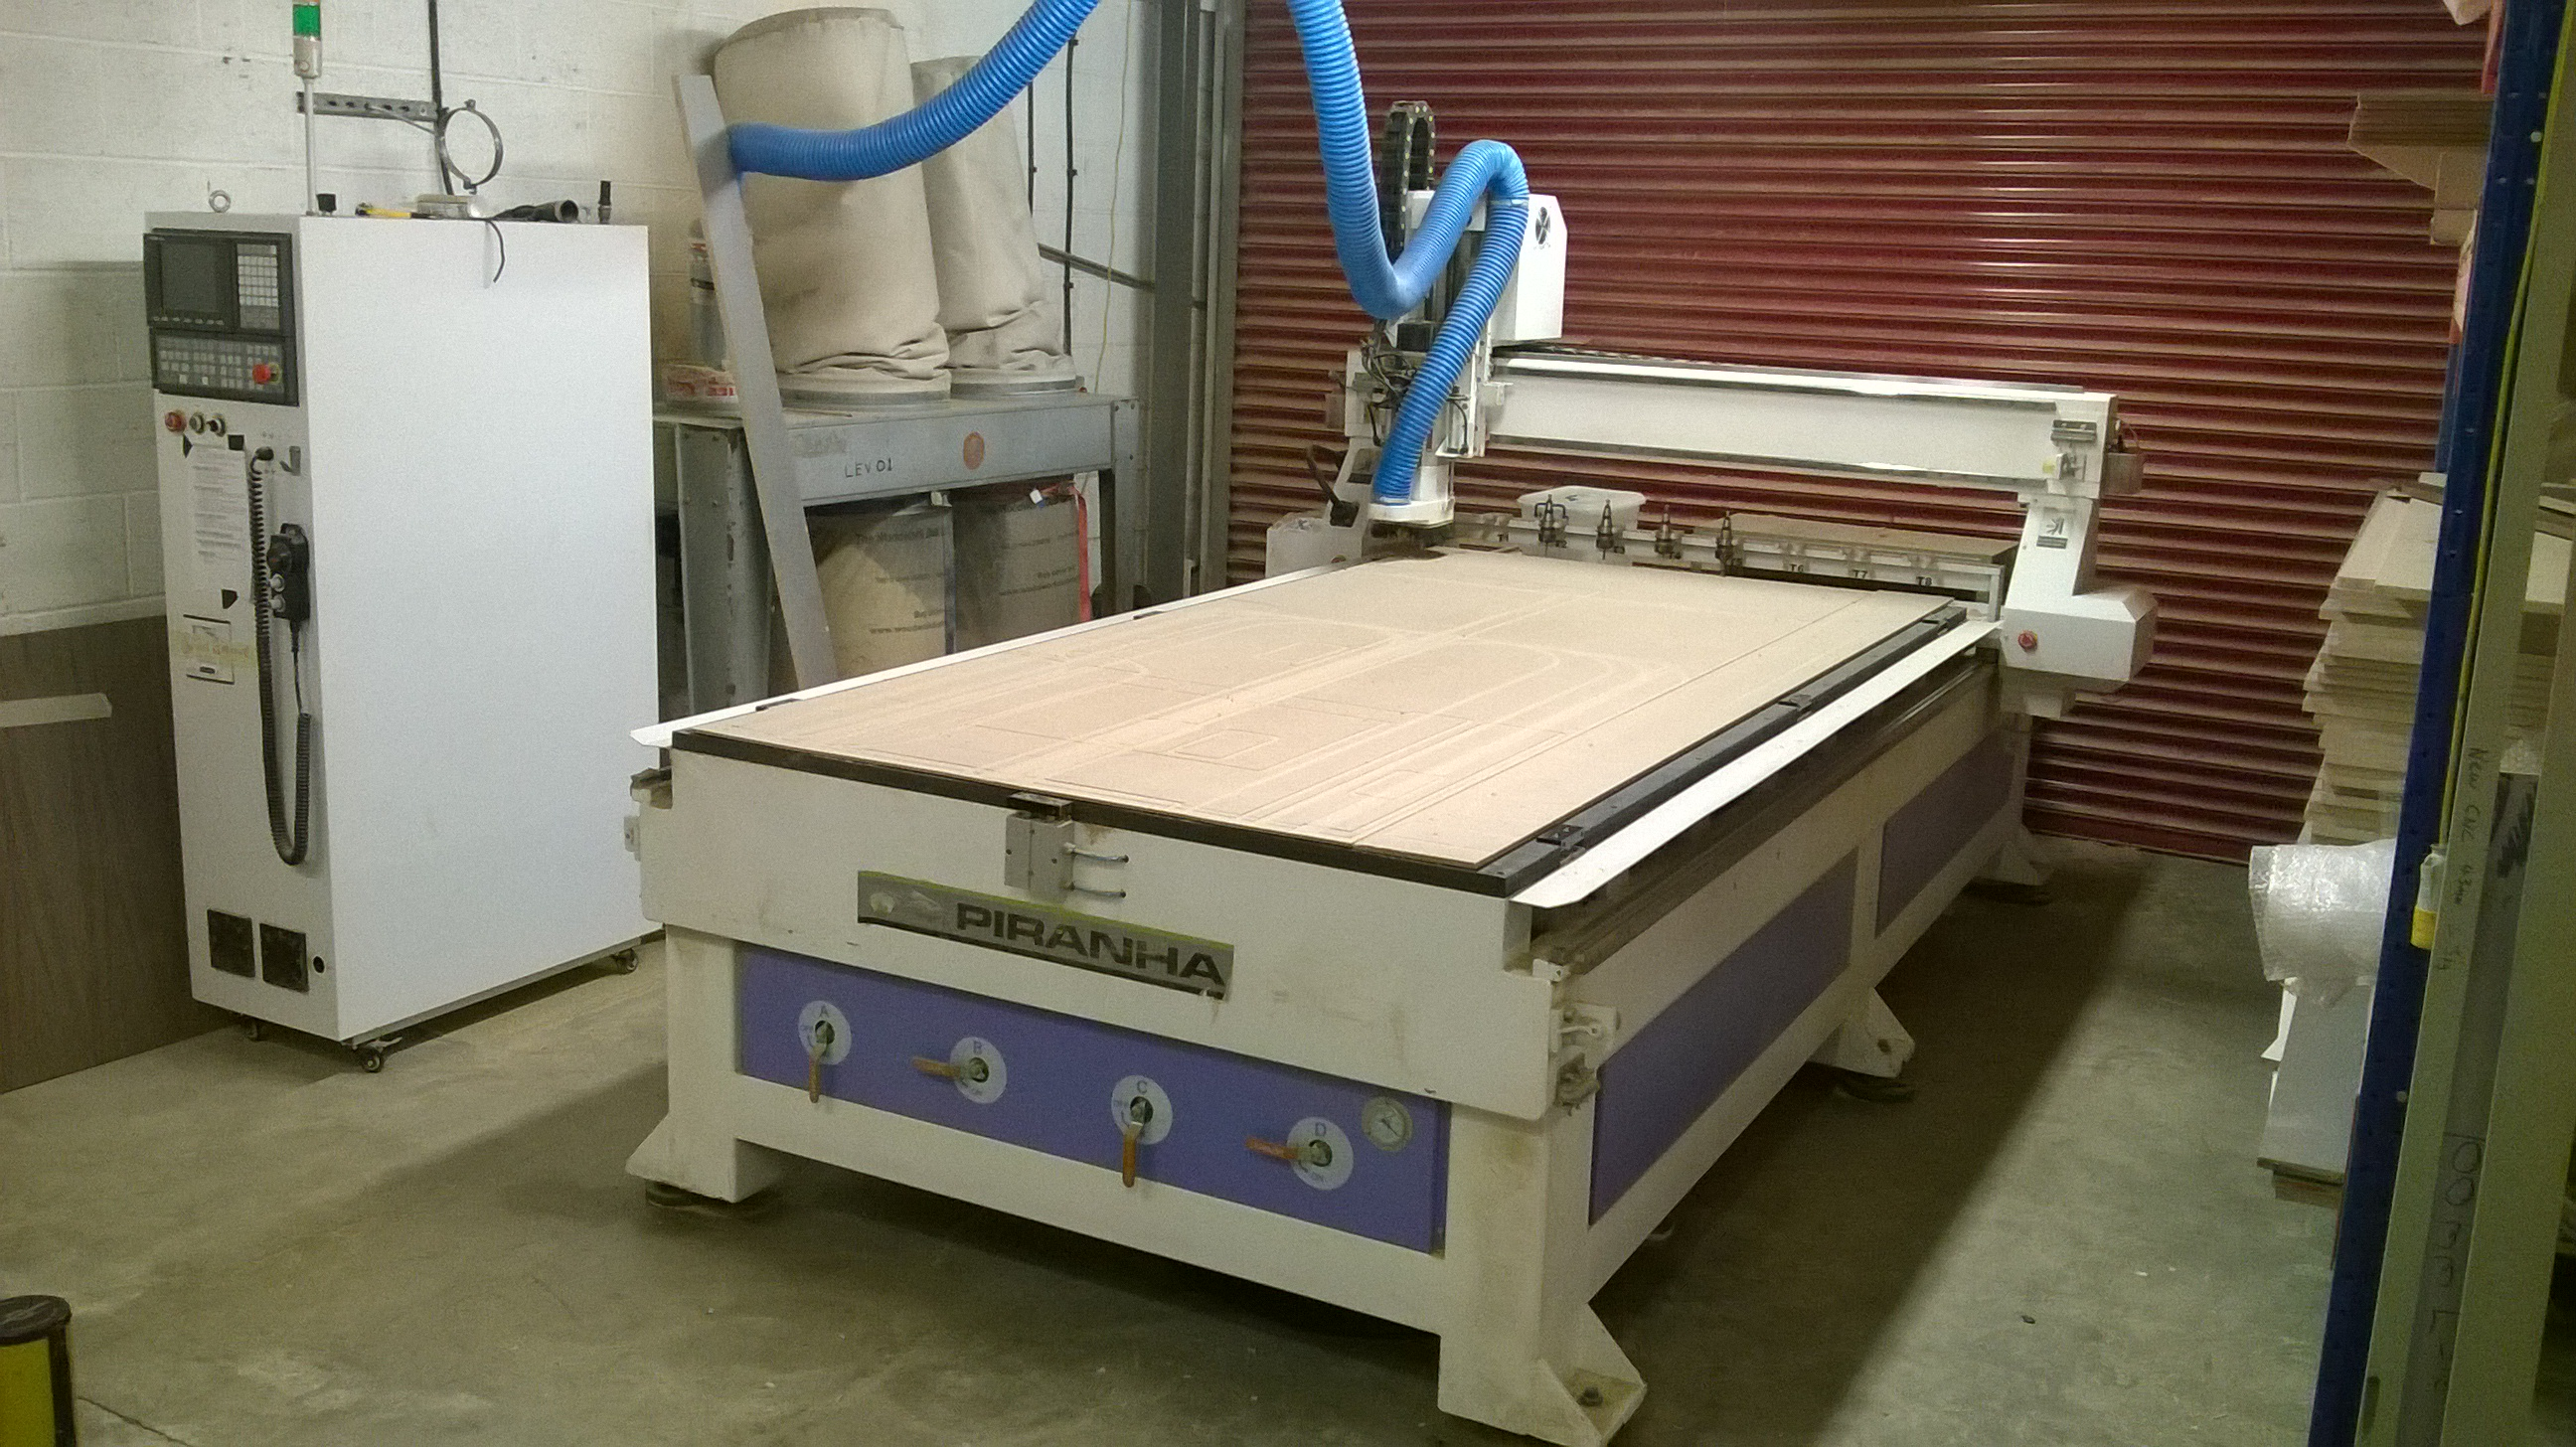 Piranha ATC 1530 3 AXIS CNC ROUTER, 1500mm x 3000mm Table Size, Serial ...